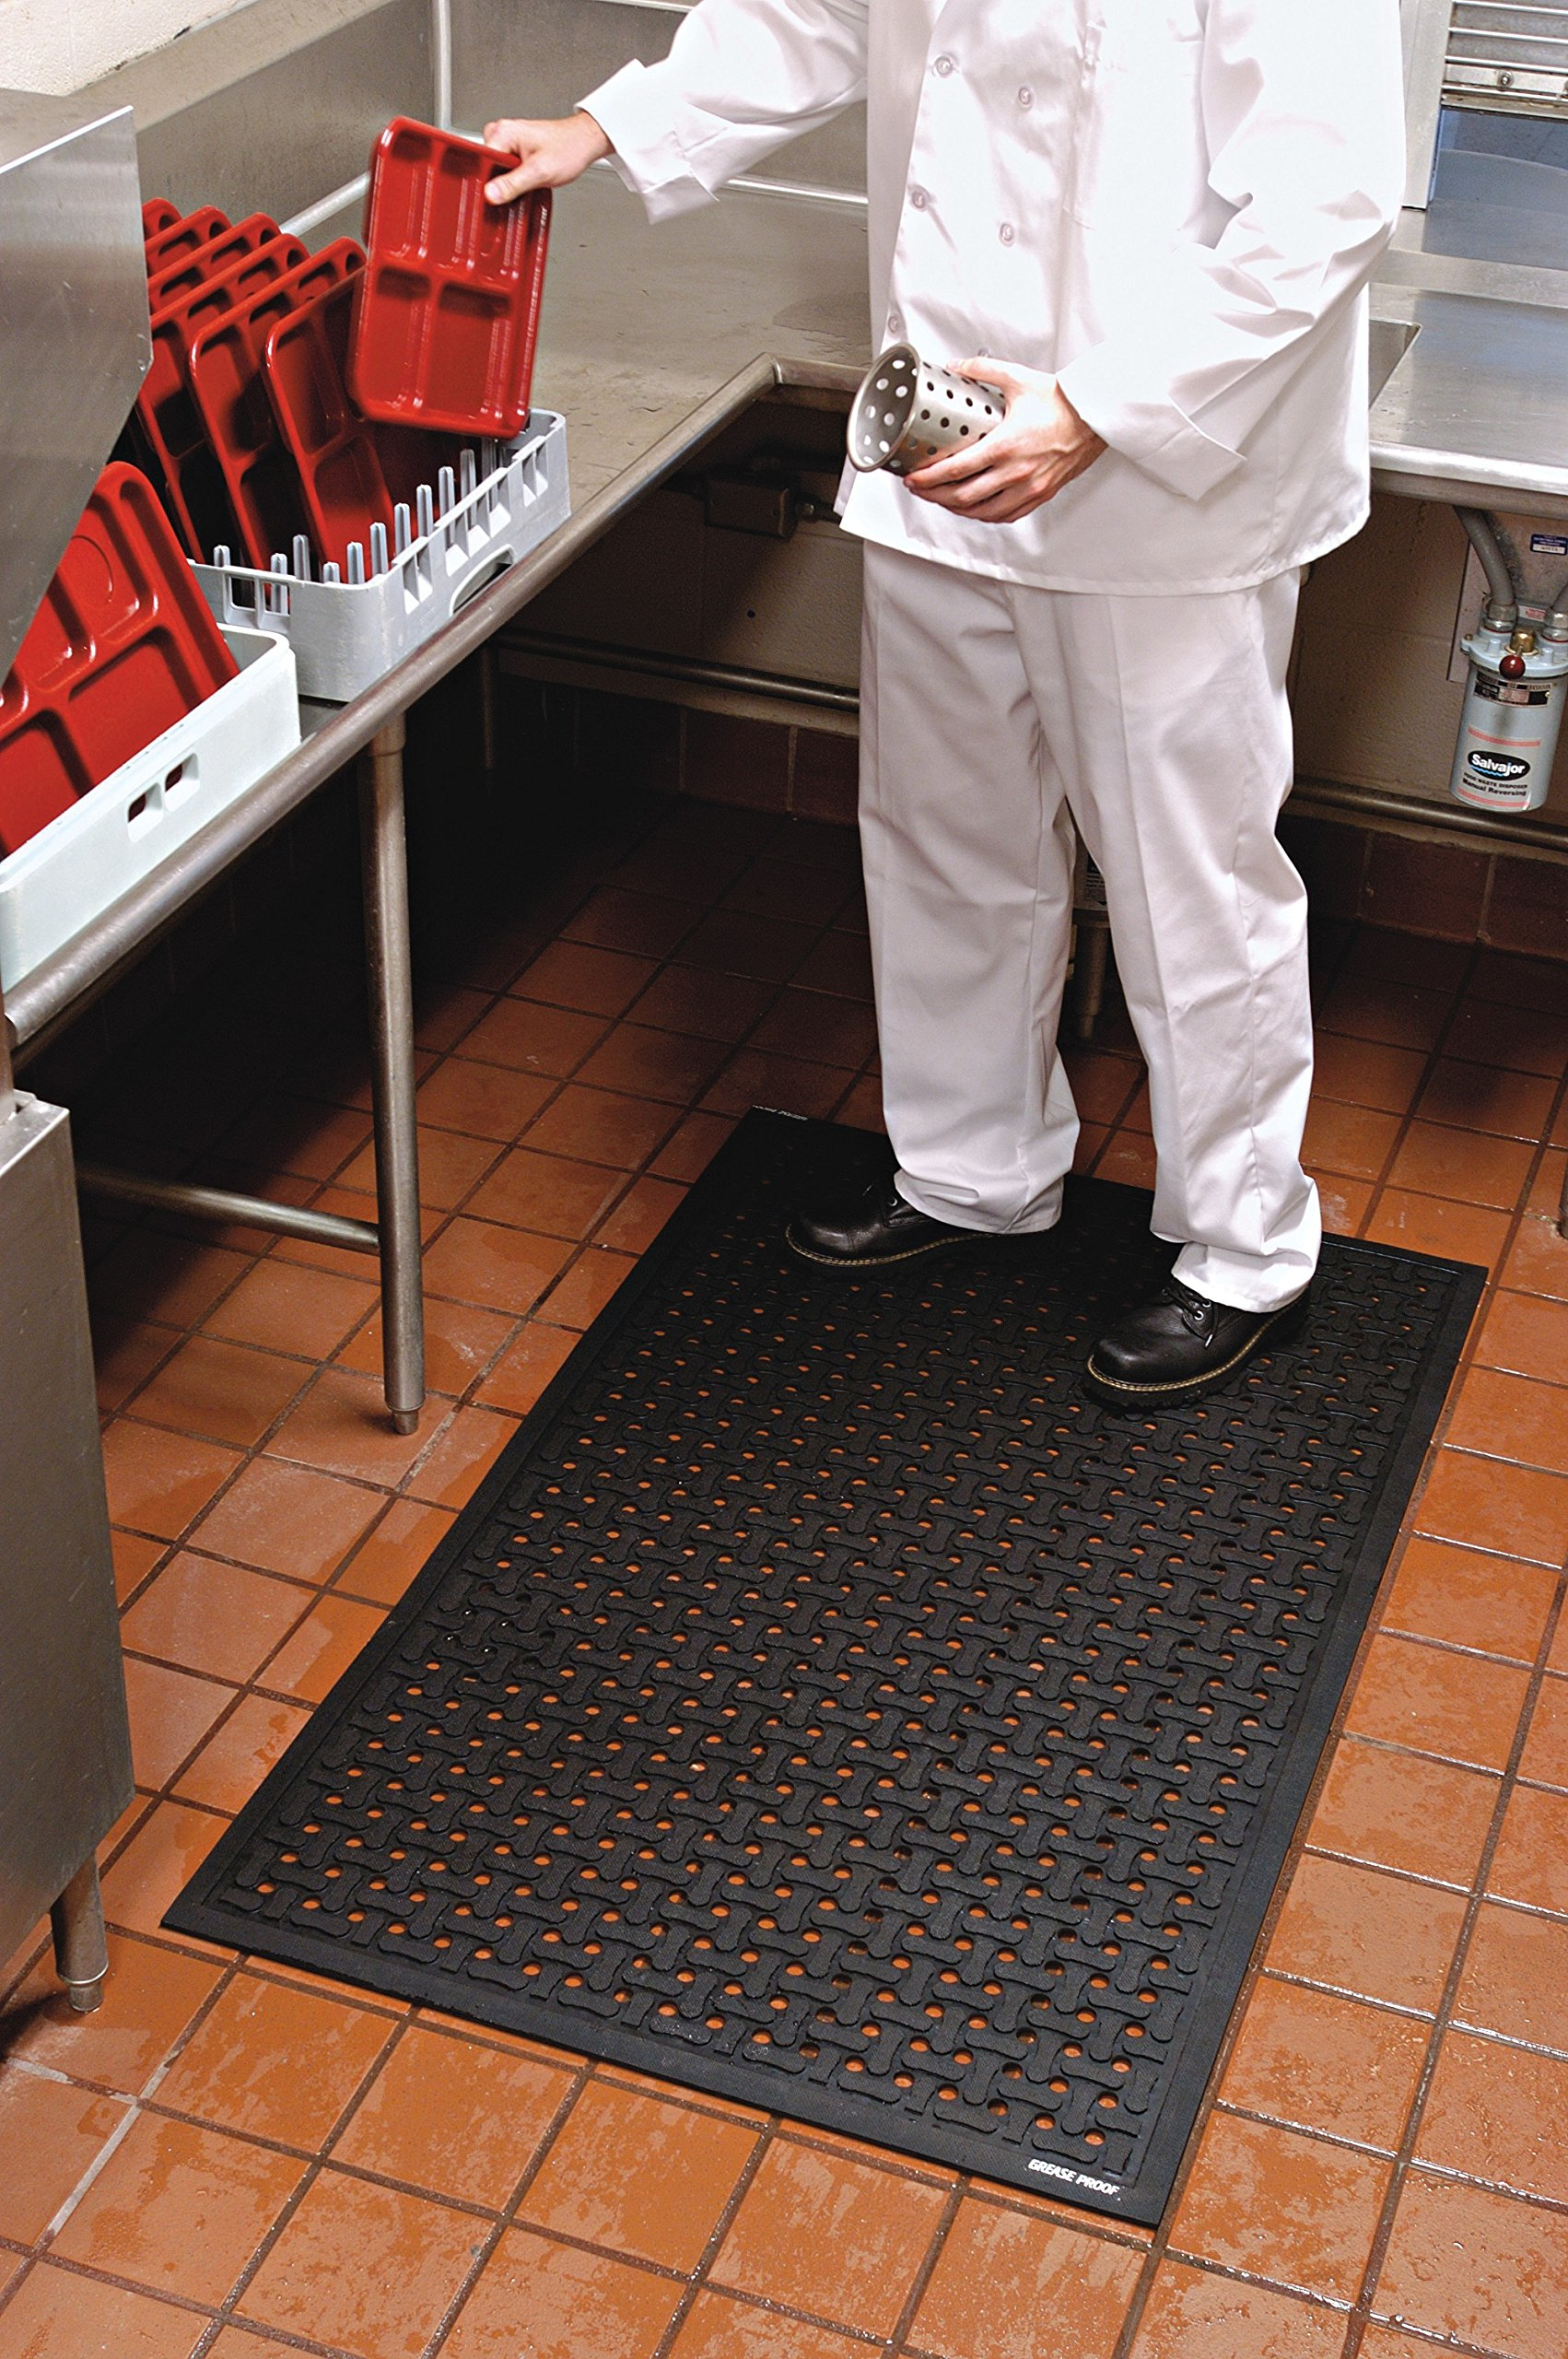 Comfort Flow Black Rubber Commercial Kitchen Drainage Mat, Anti-Fatigue, Slip and Grease/Oil Resistant 3' Length x 2' Width, by M+A Matting by M+A Matting (Image #4)